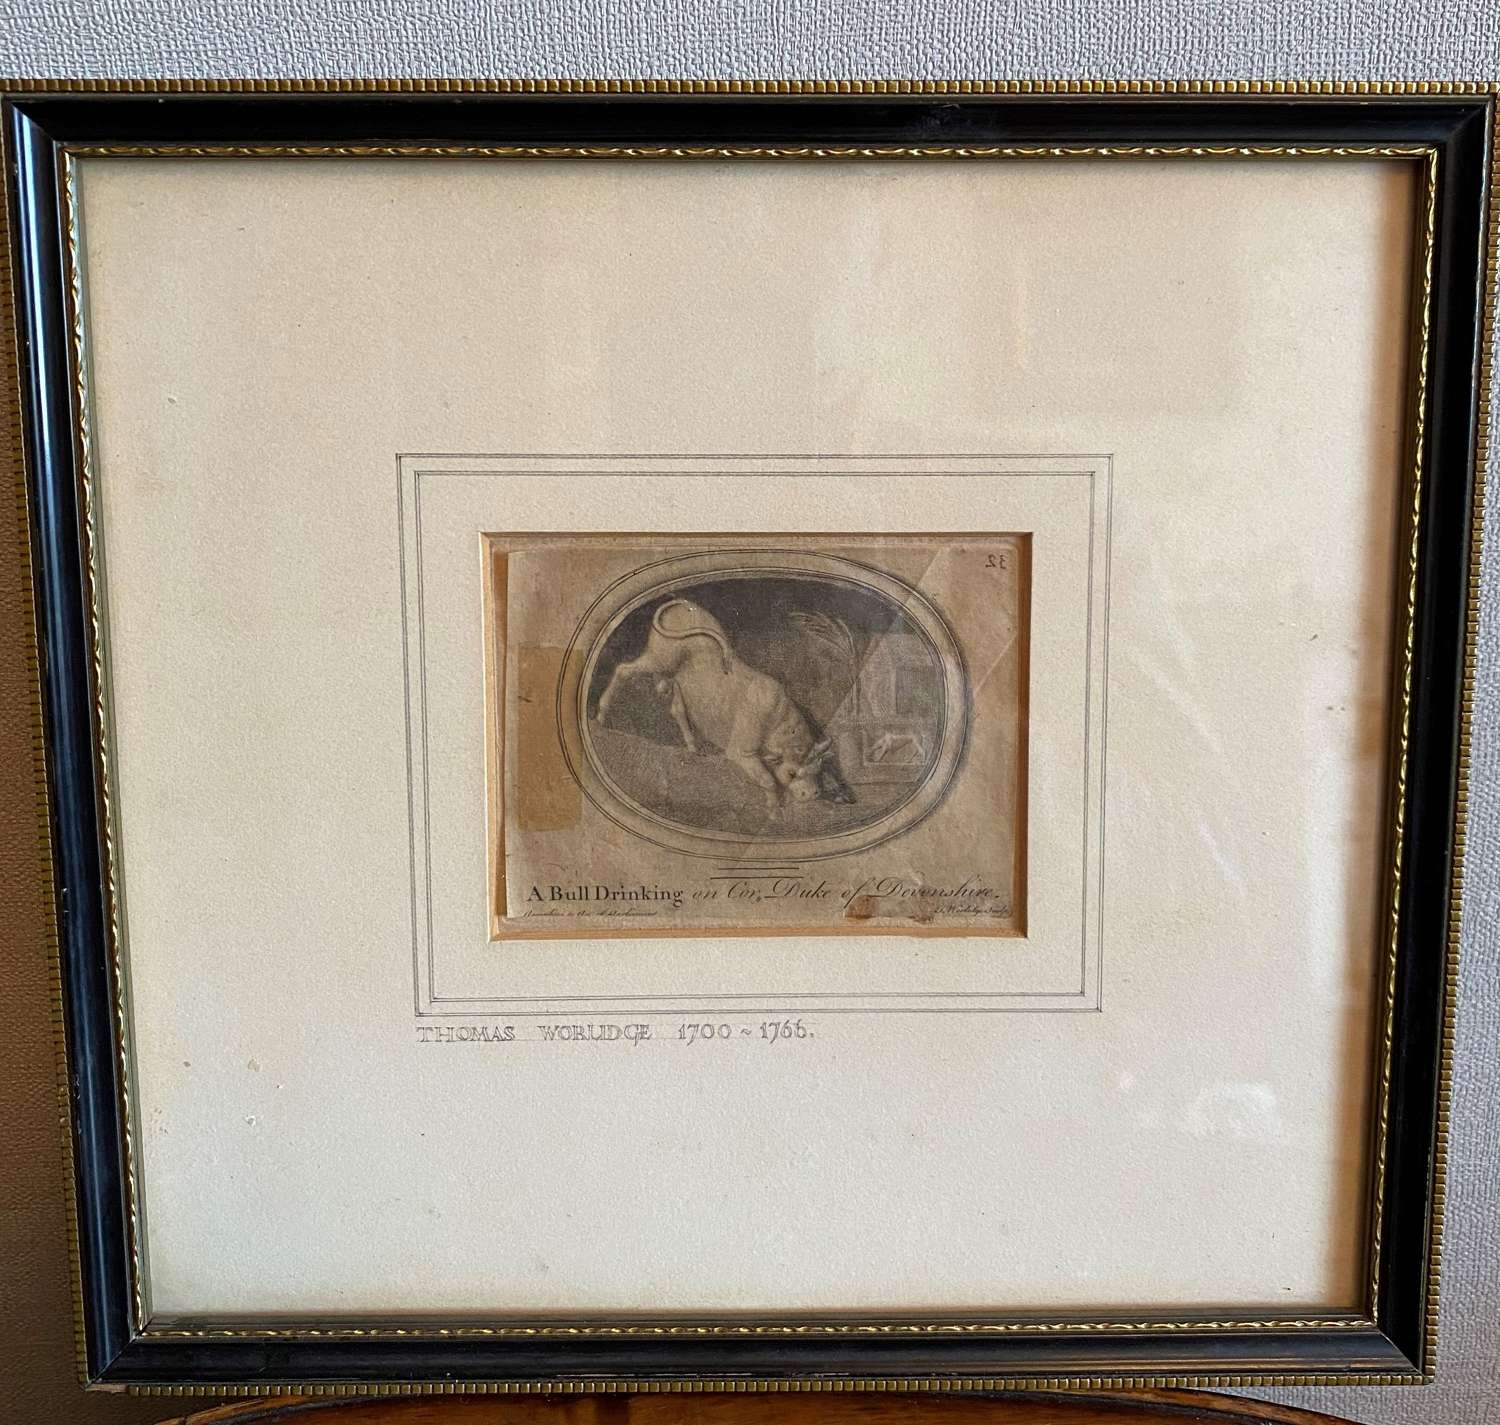 Etching By Thomas Worlidge (1700-66) From Chatsworth House